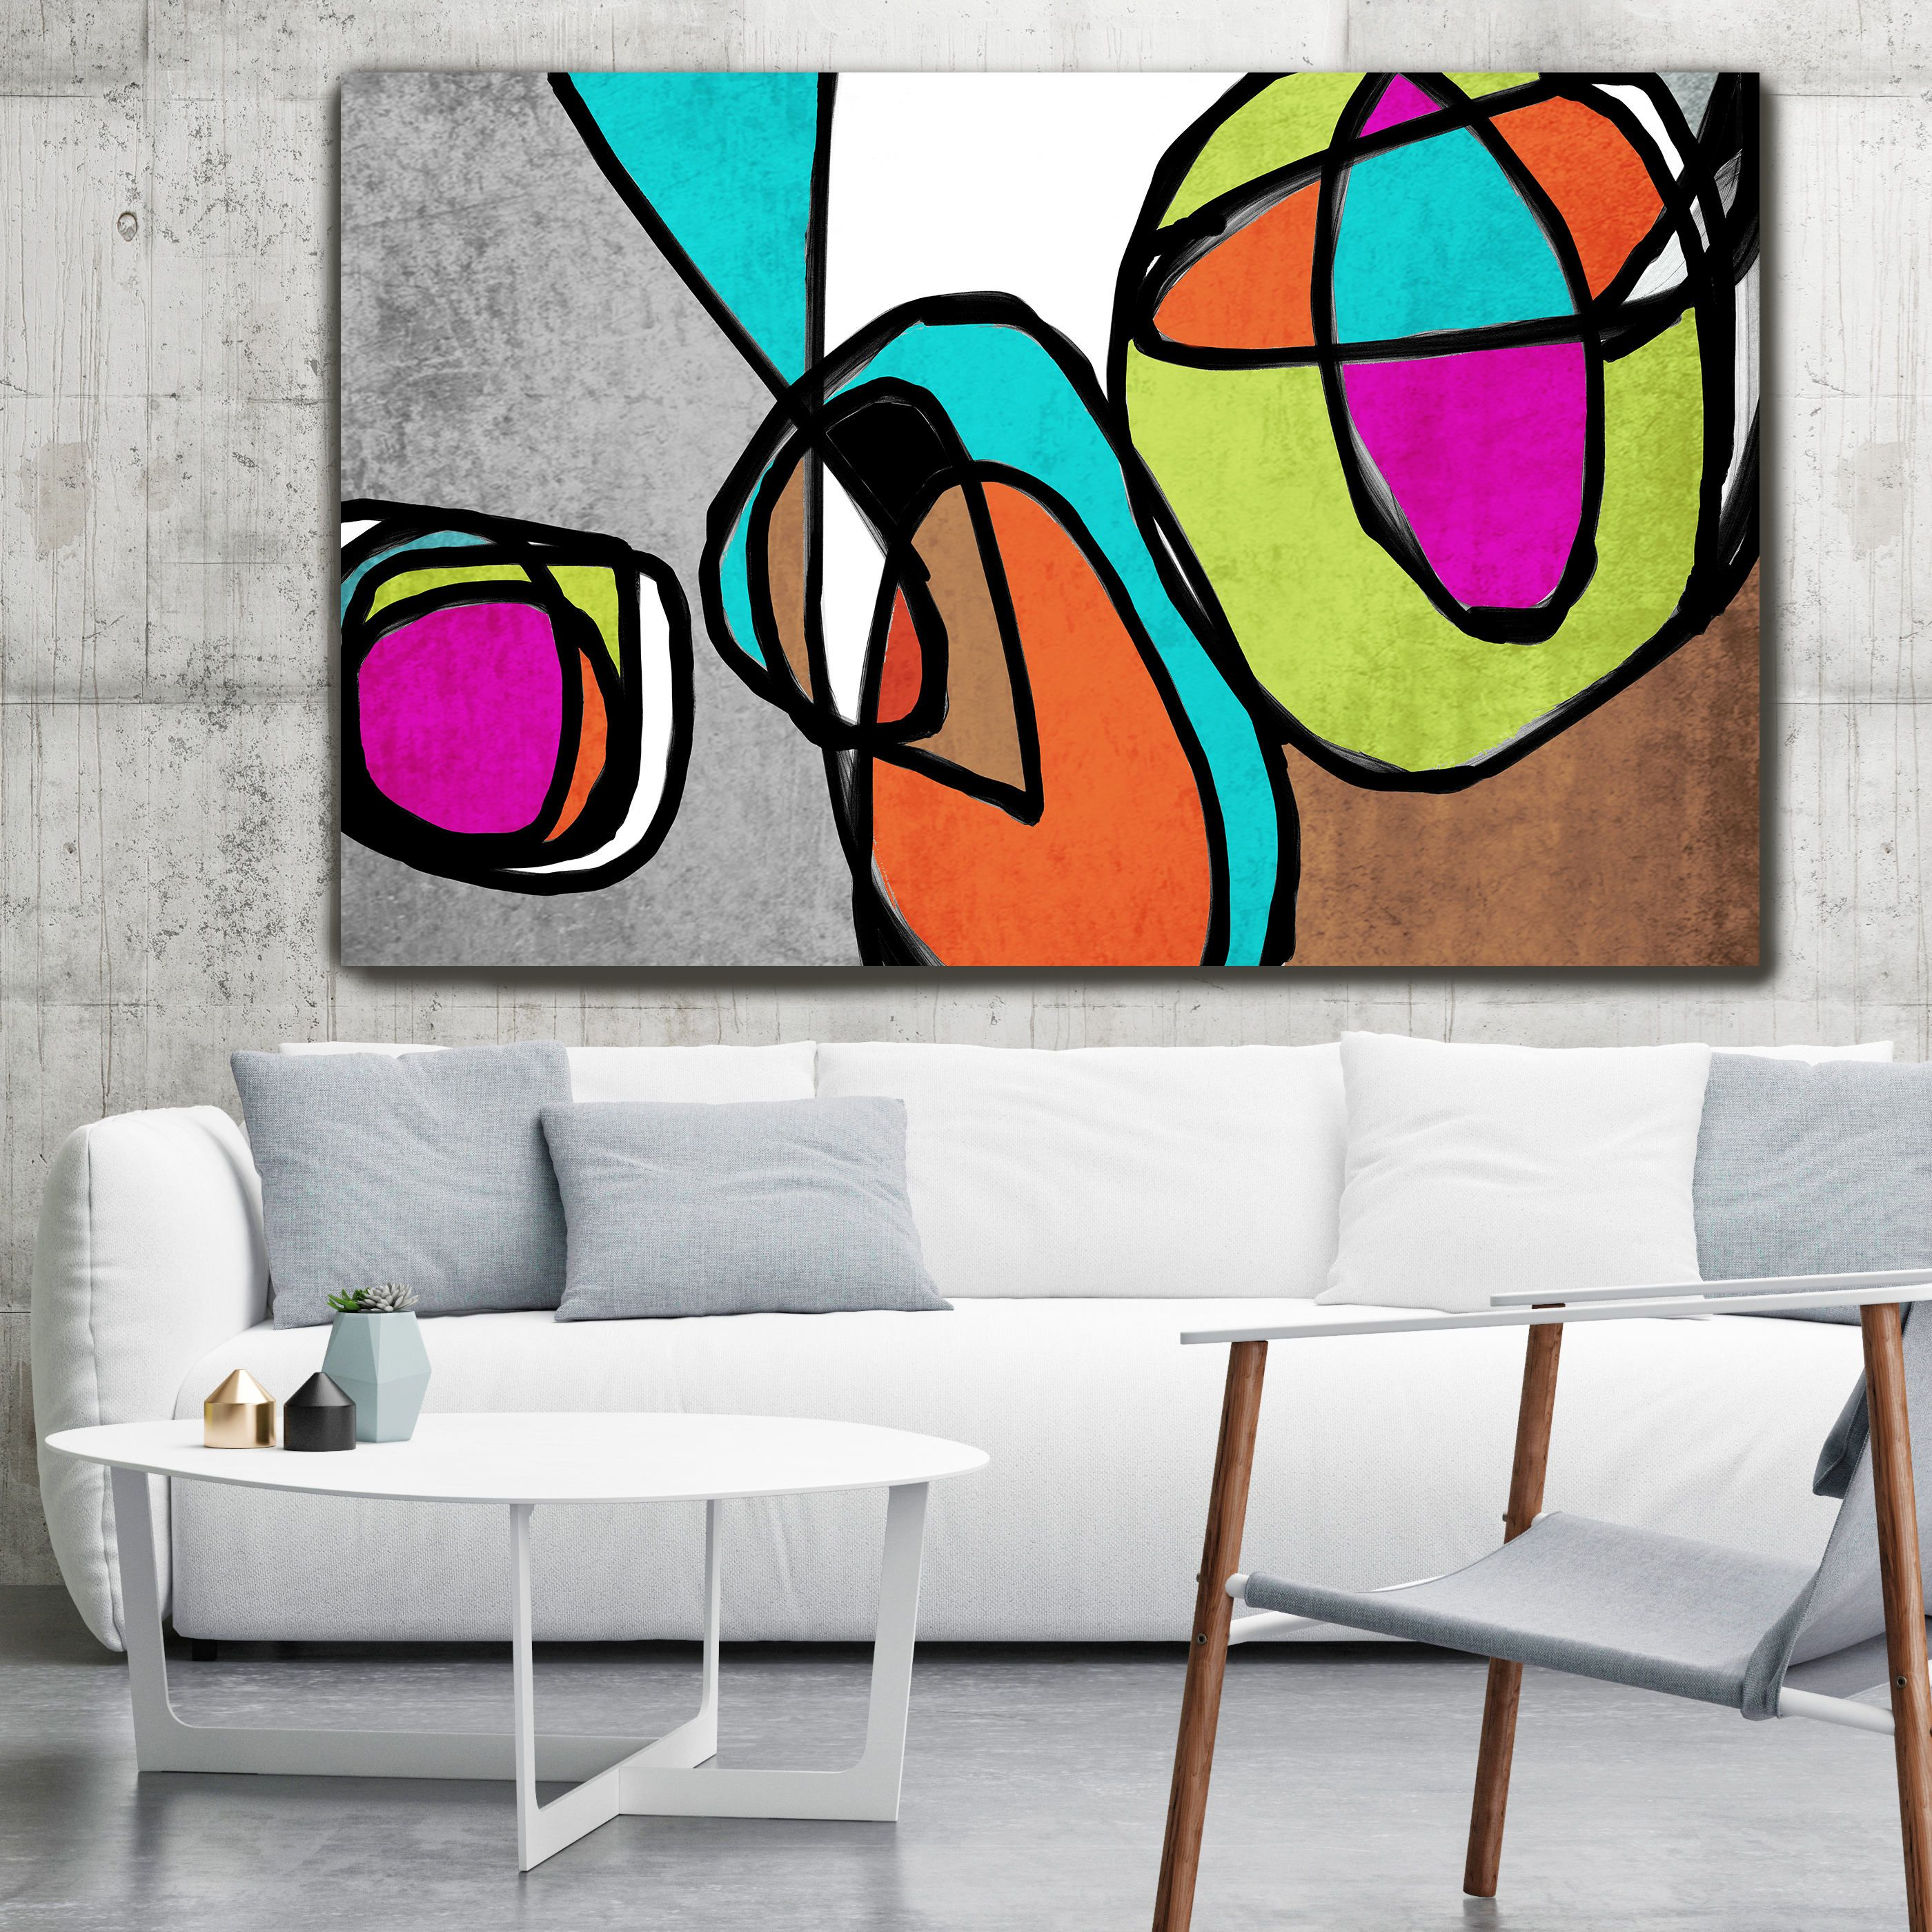 Vibrant Colorful Abstract 68 2889 Mid Century Modern Colorful Canvas Art Print Mid Century Canv Colorful Canvas Art Abstract Art Collection Modern Canvas Art